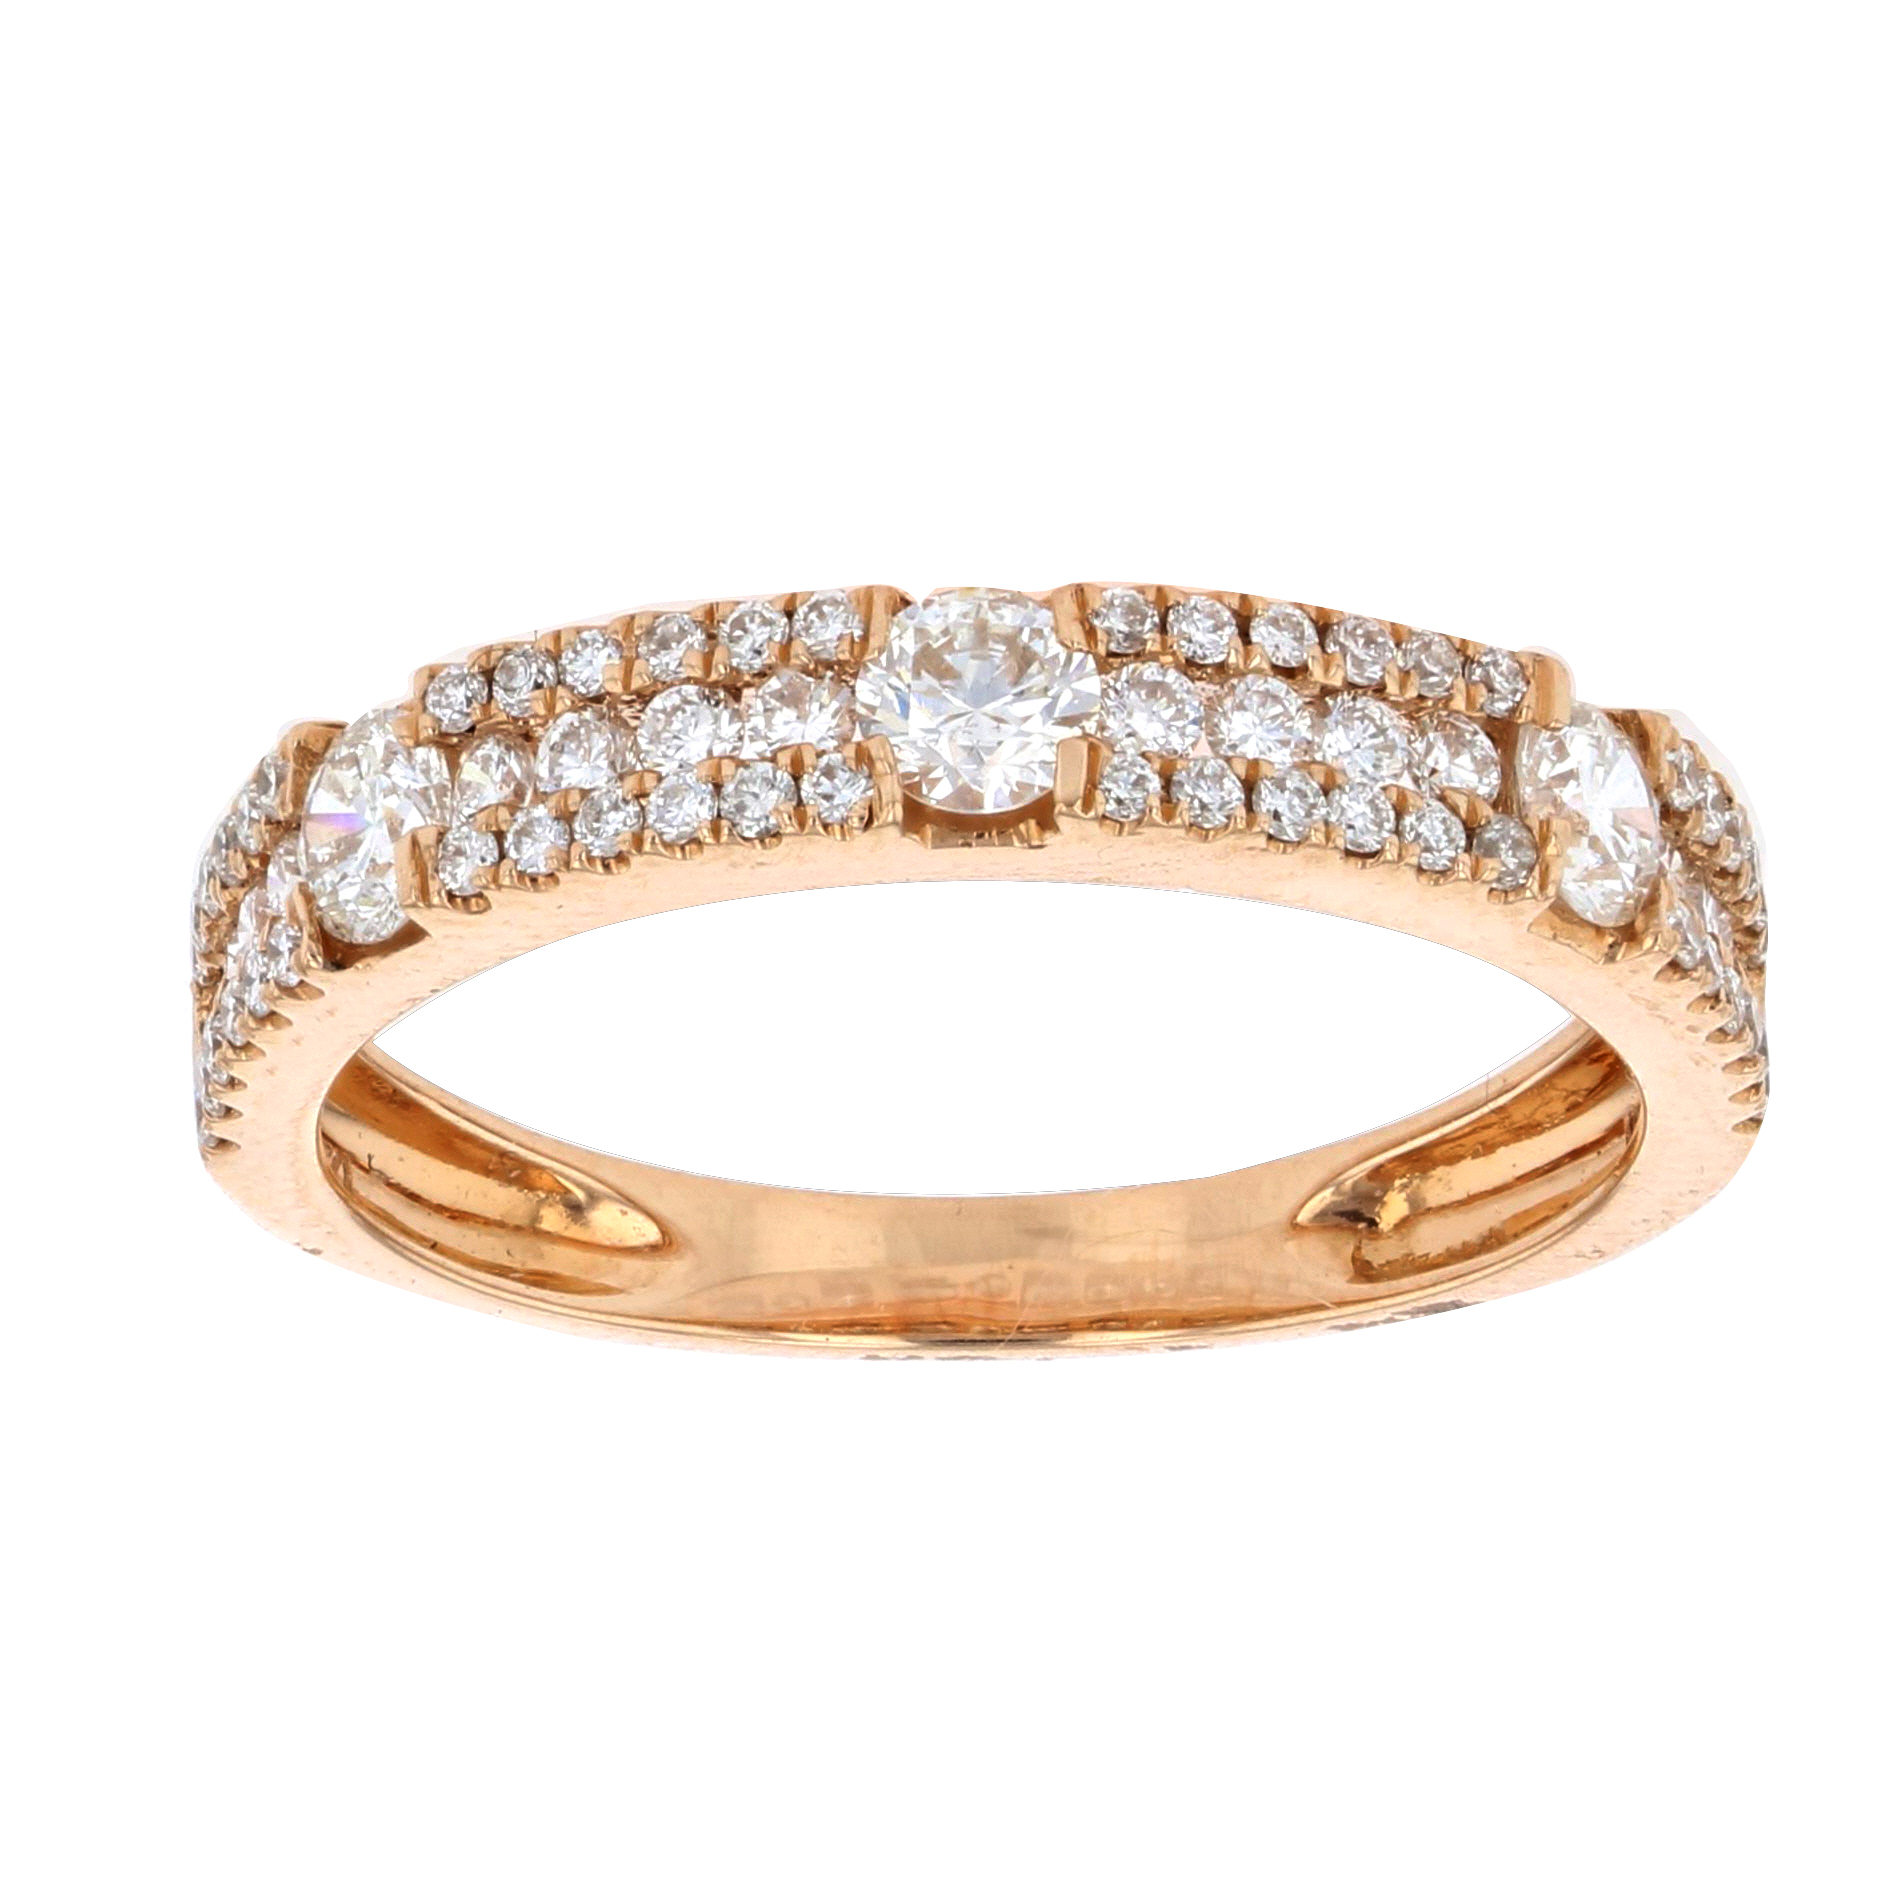 View 0.70ctw Diamond Fashion Band in 18k Rose Gold